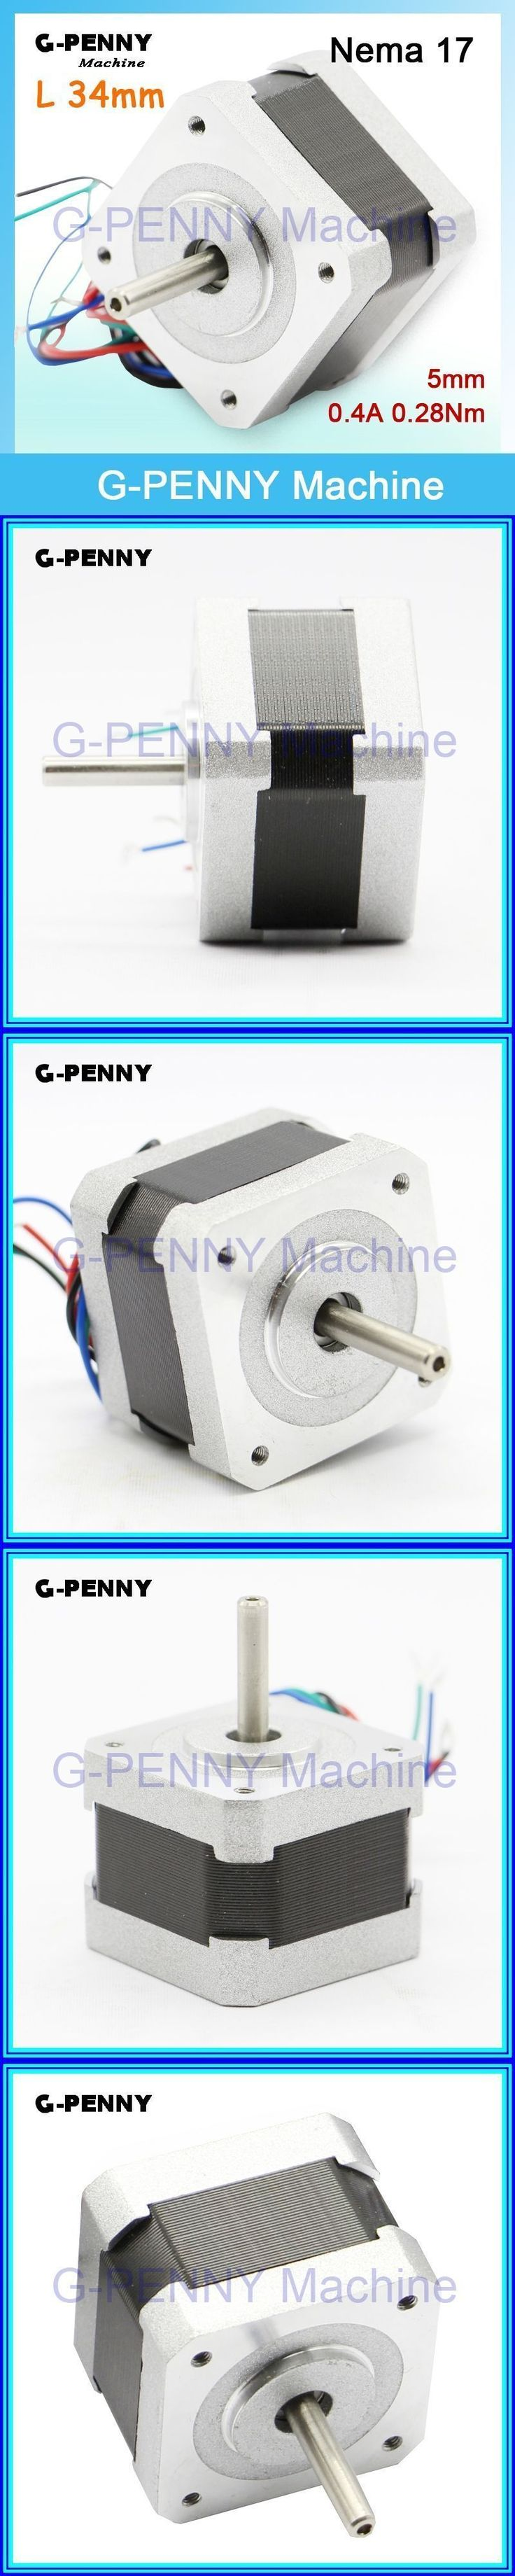 Sale! Nema17 CNC stepper motor 42x34mm for sale 0.4A 0.28N.m 1.8degree  40Oz-in 4-Lead stepping motor For CNC machine 3D Printer #3dprintermachine